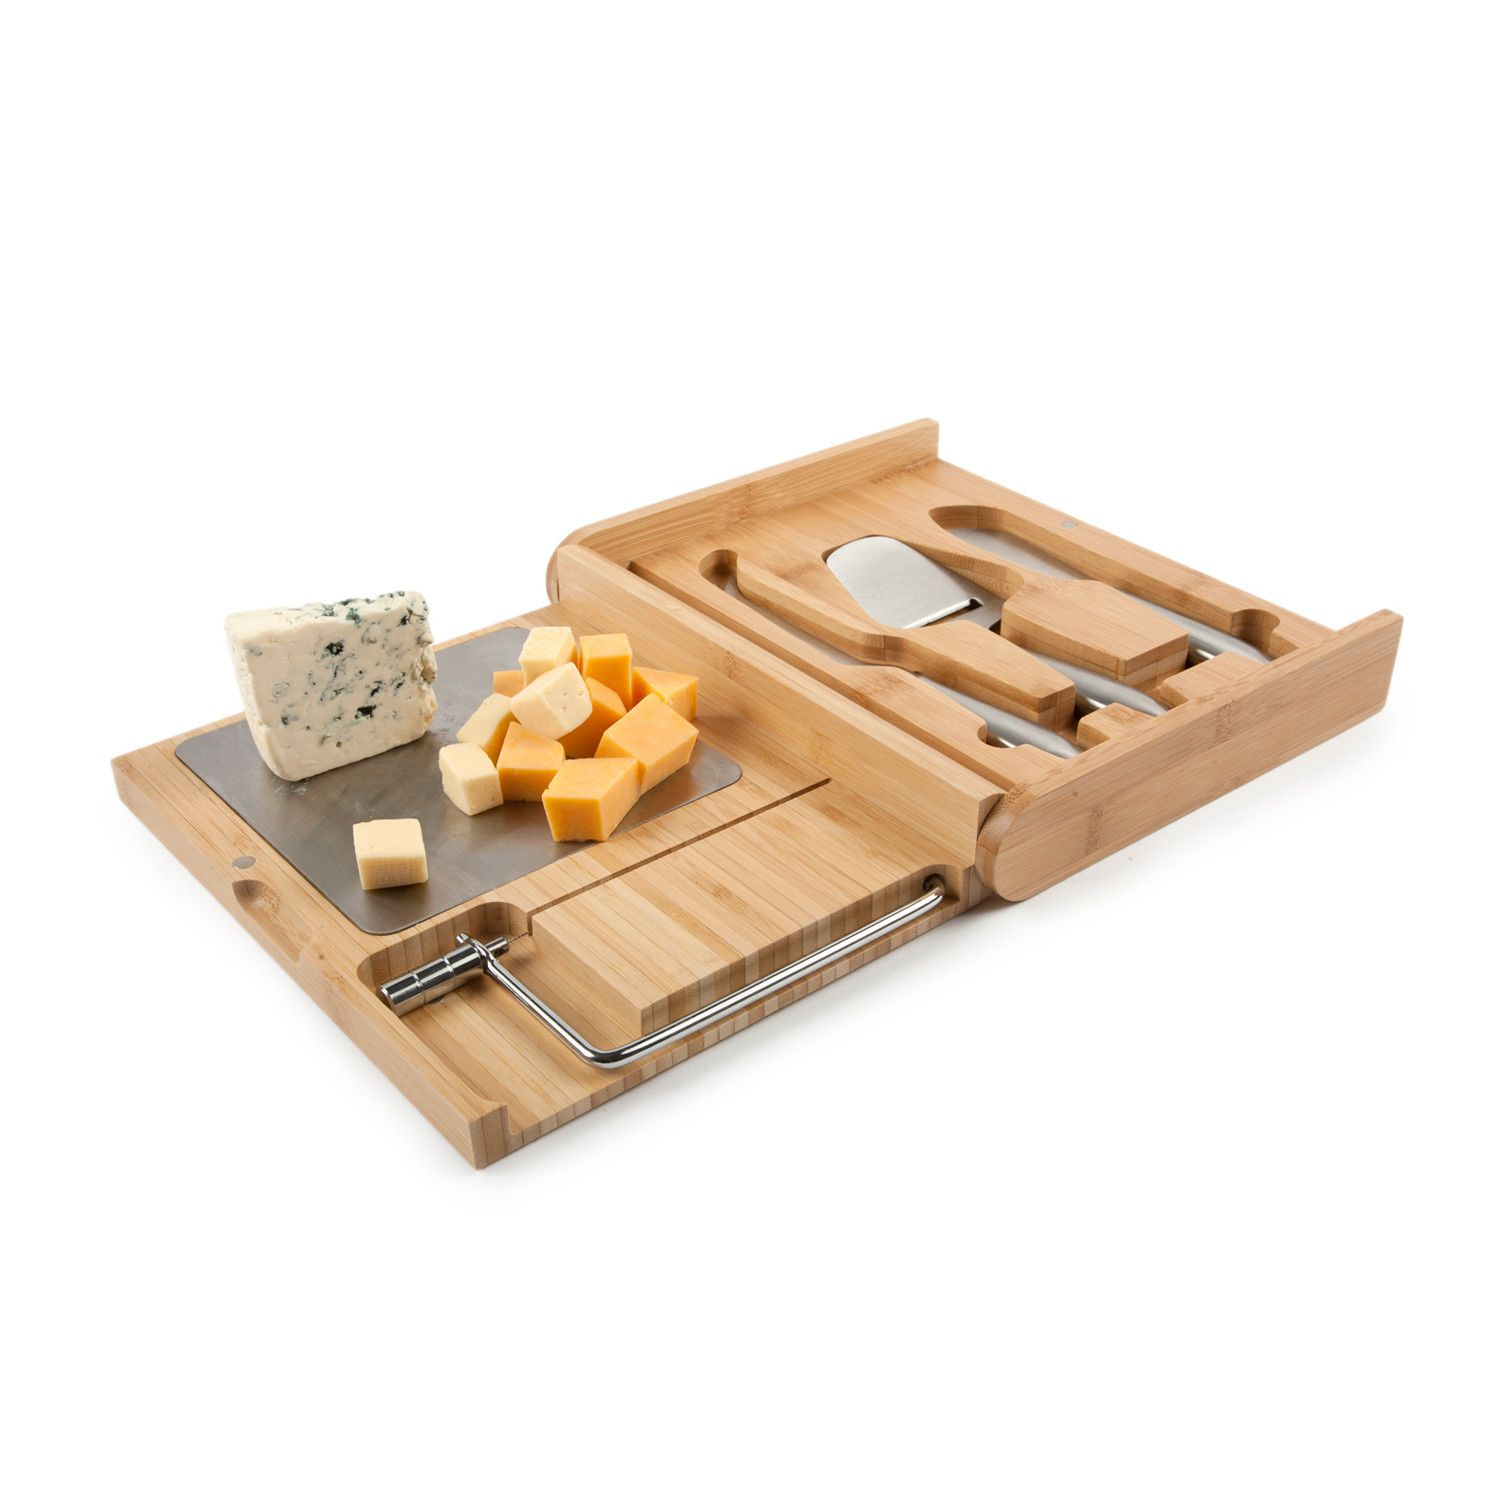 The Ultimate Cheese Set is the premier kit for serving cheese in style at your next event. The set is enclosed in a bamboo case that serves to hold stainless steel tools and become a slicing board when opened. This all inclusive set makes entertaining stylish and clean up a breeze.